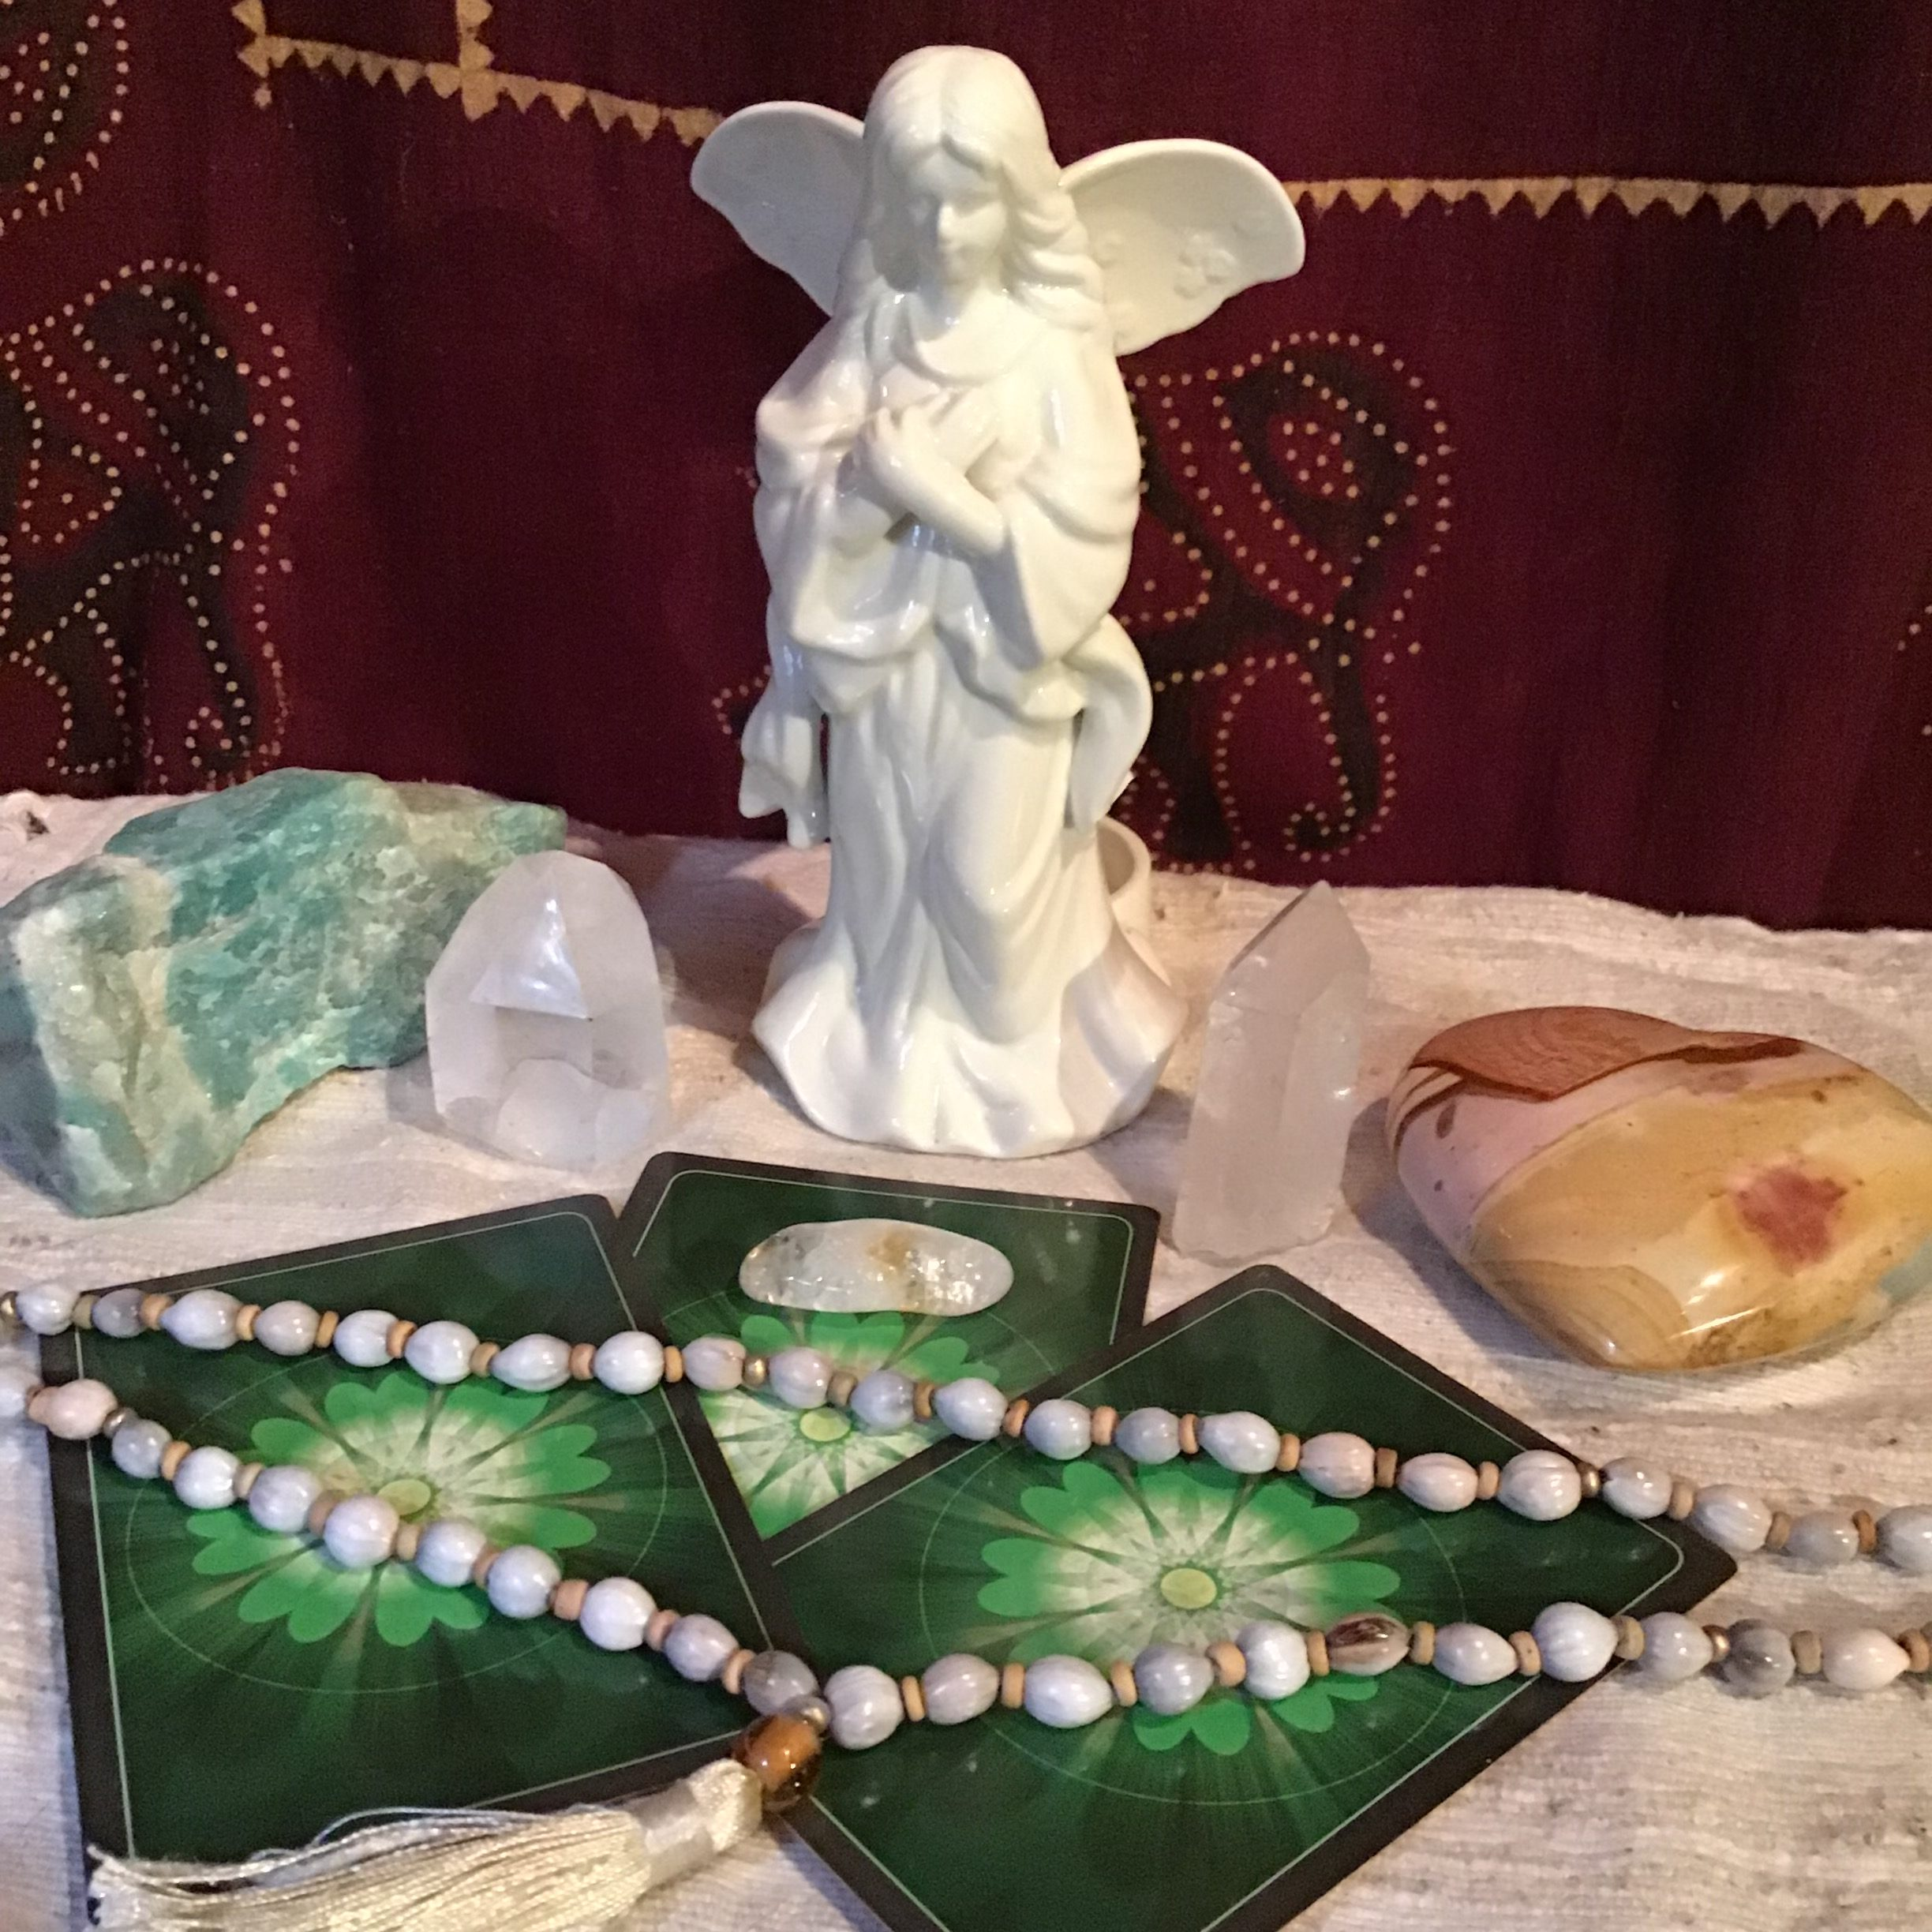 Clarvoyant Readings for Life Purpose